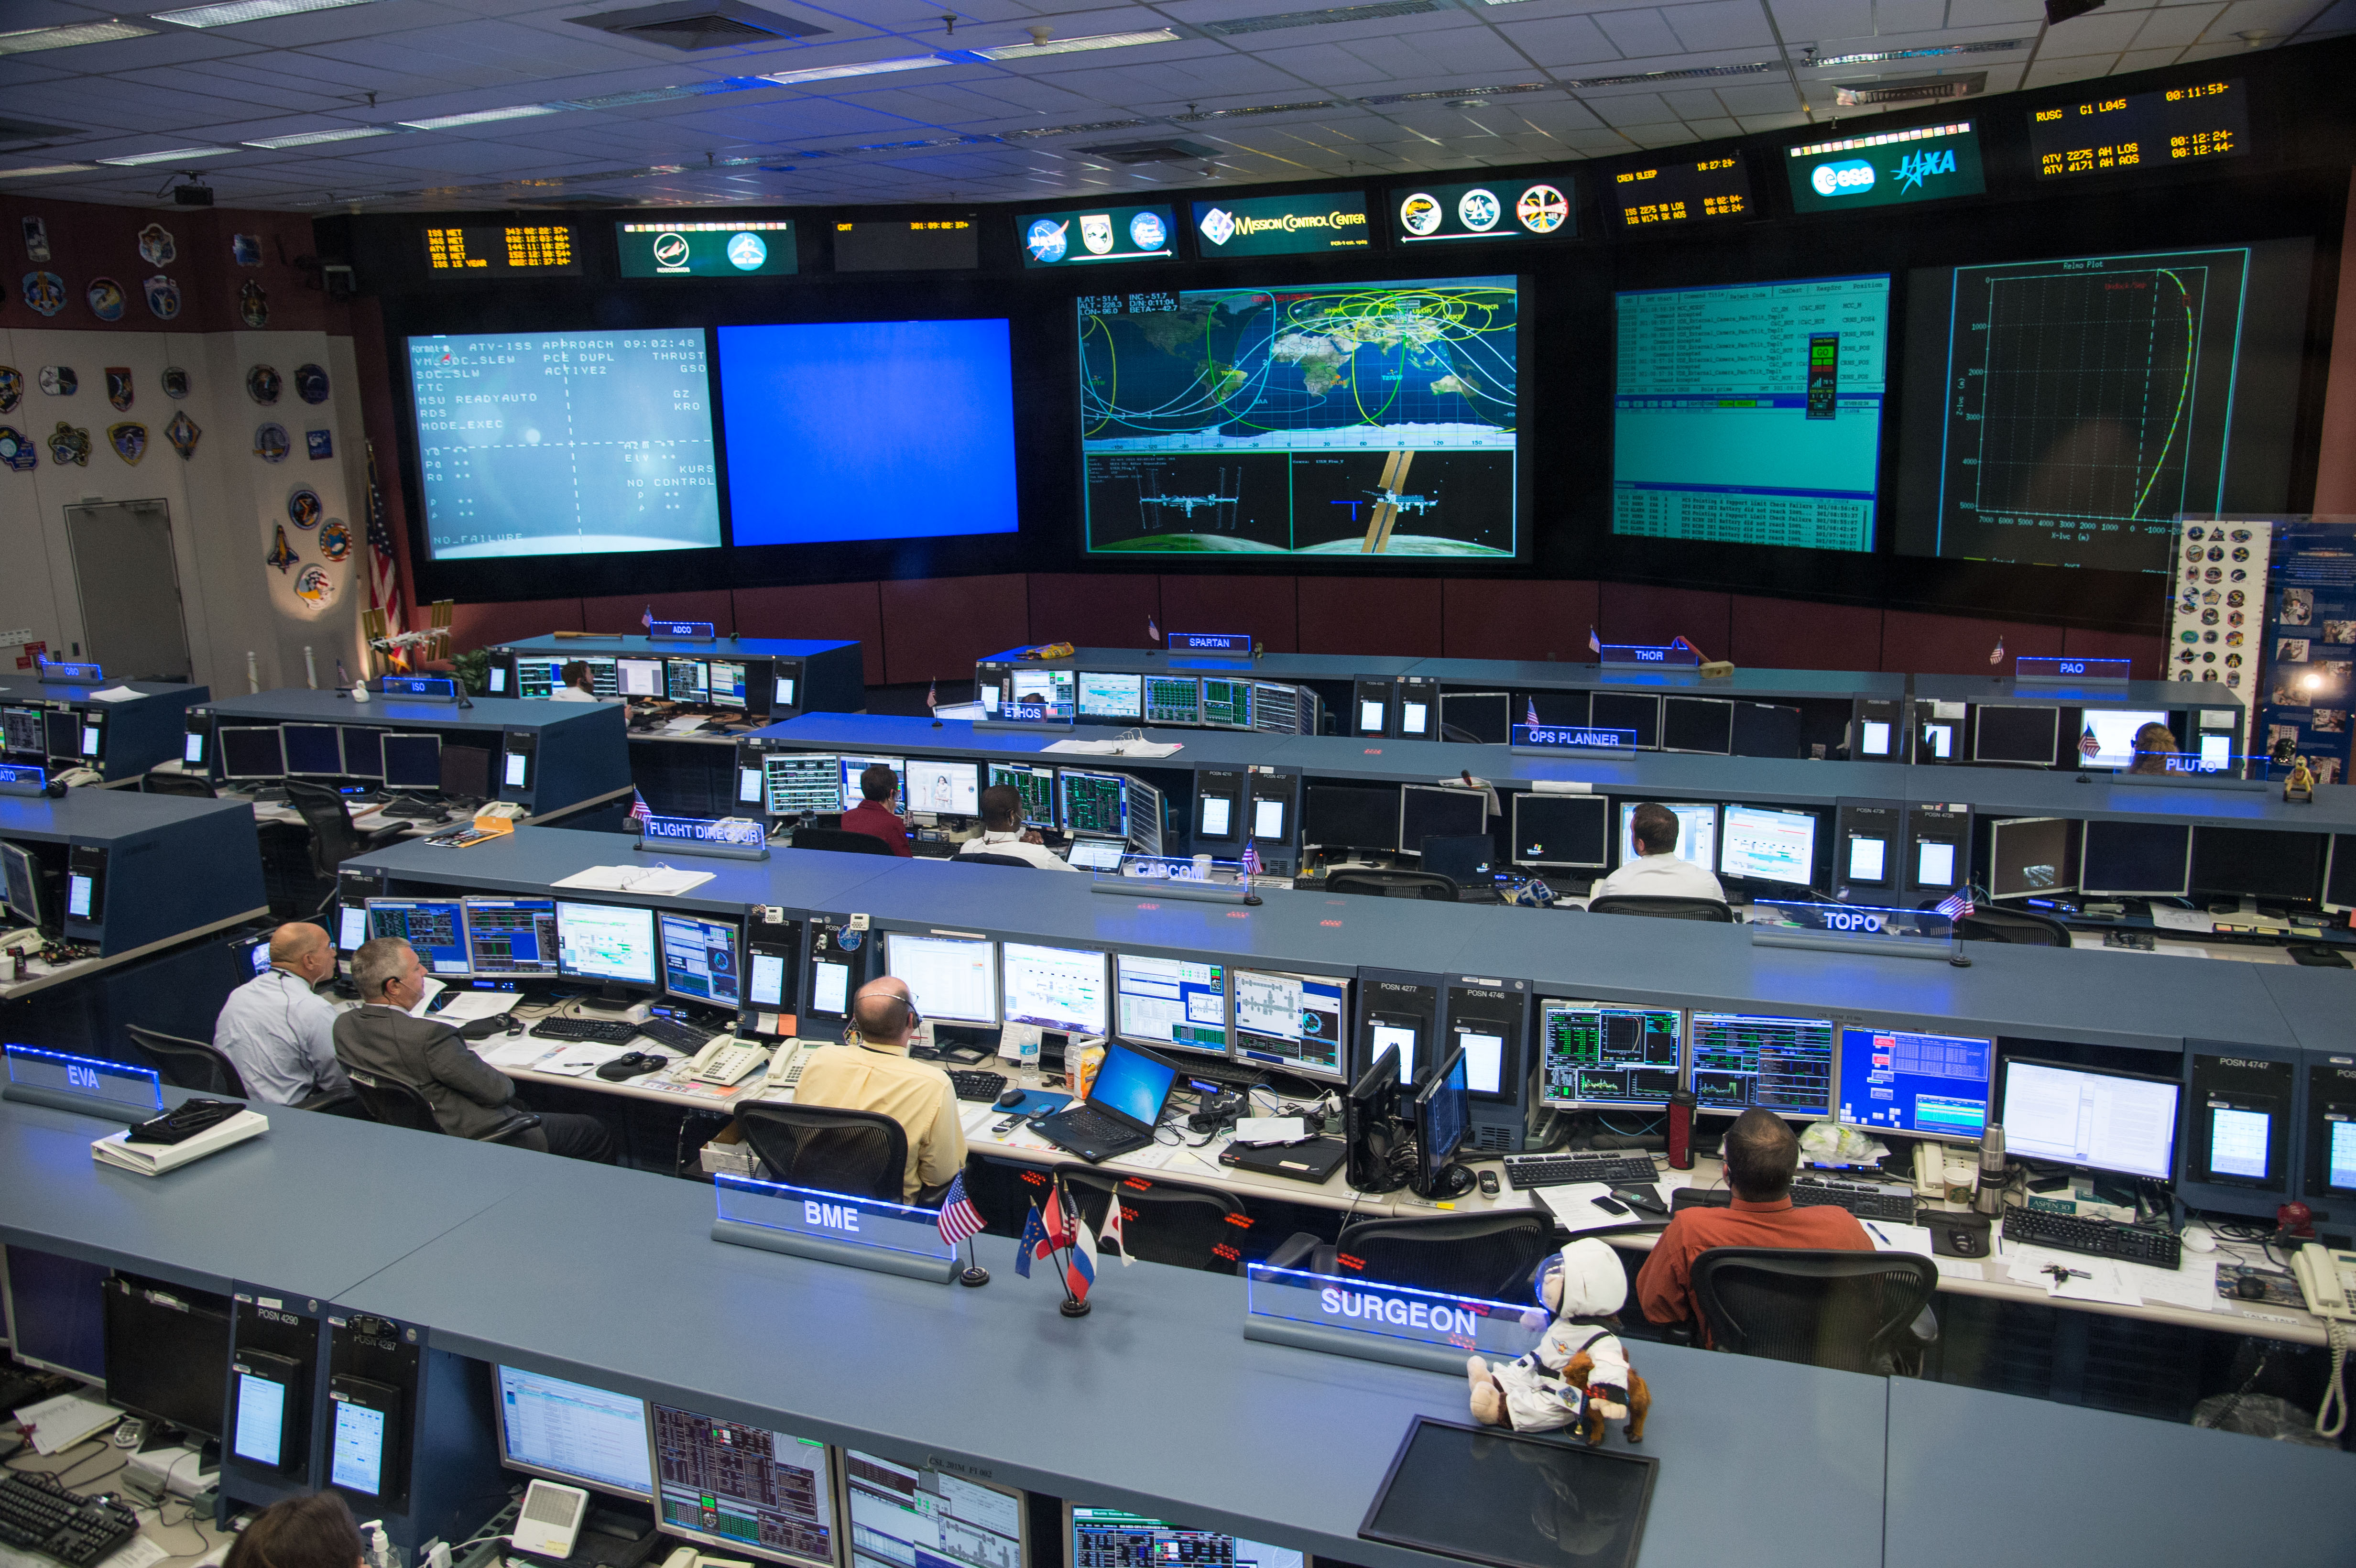 houston space station controls - photo #26